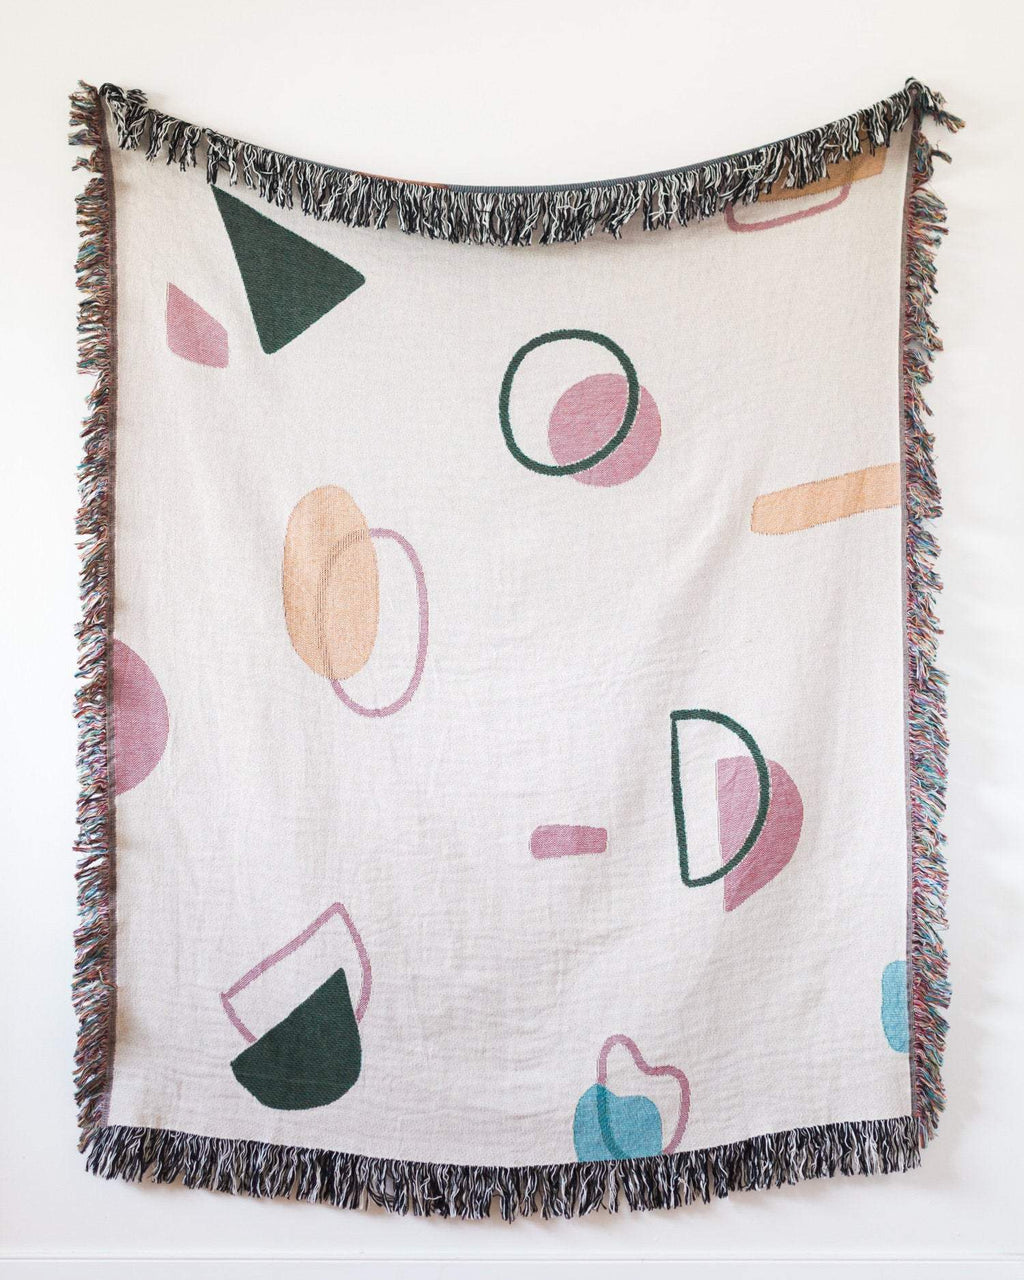 Abstract Woven Throw Blanket